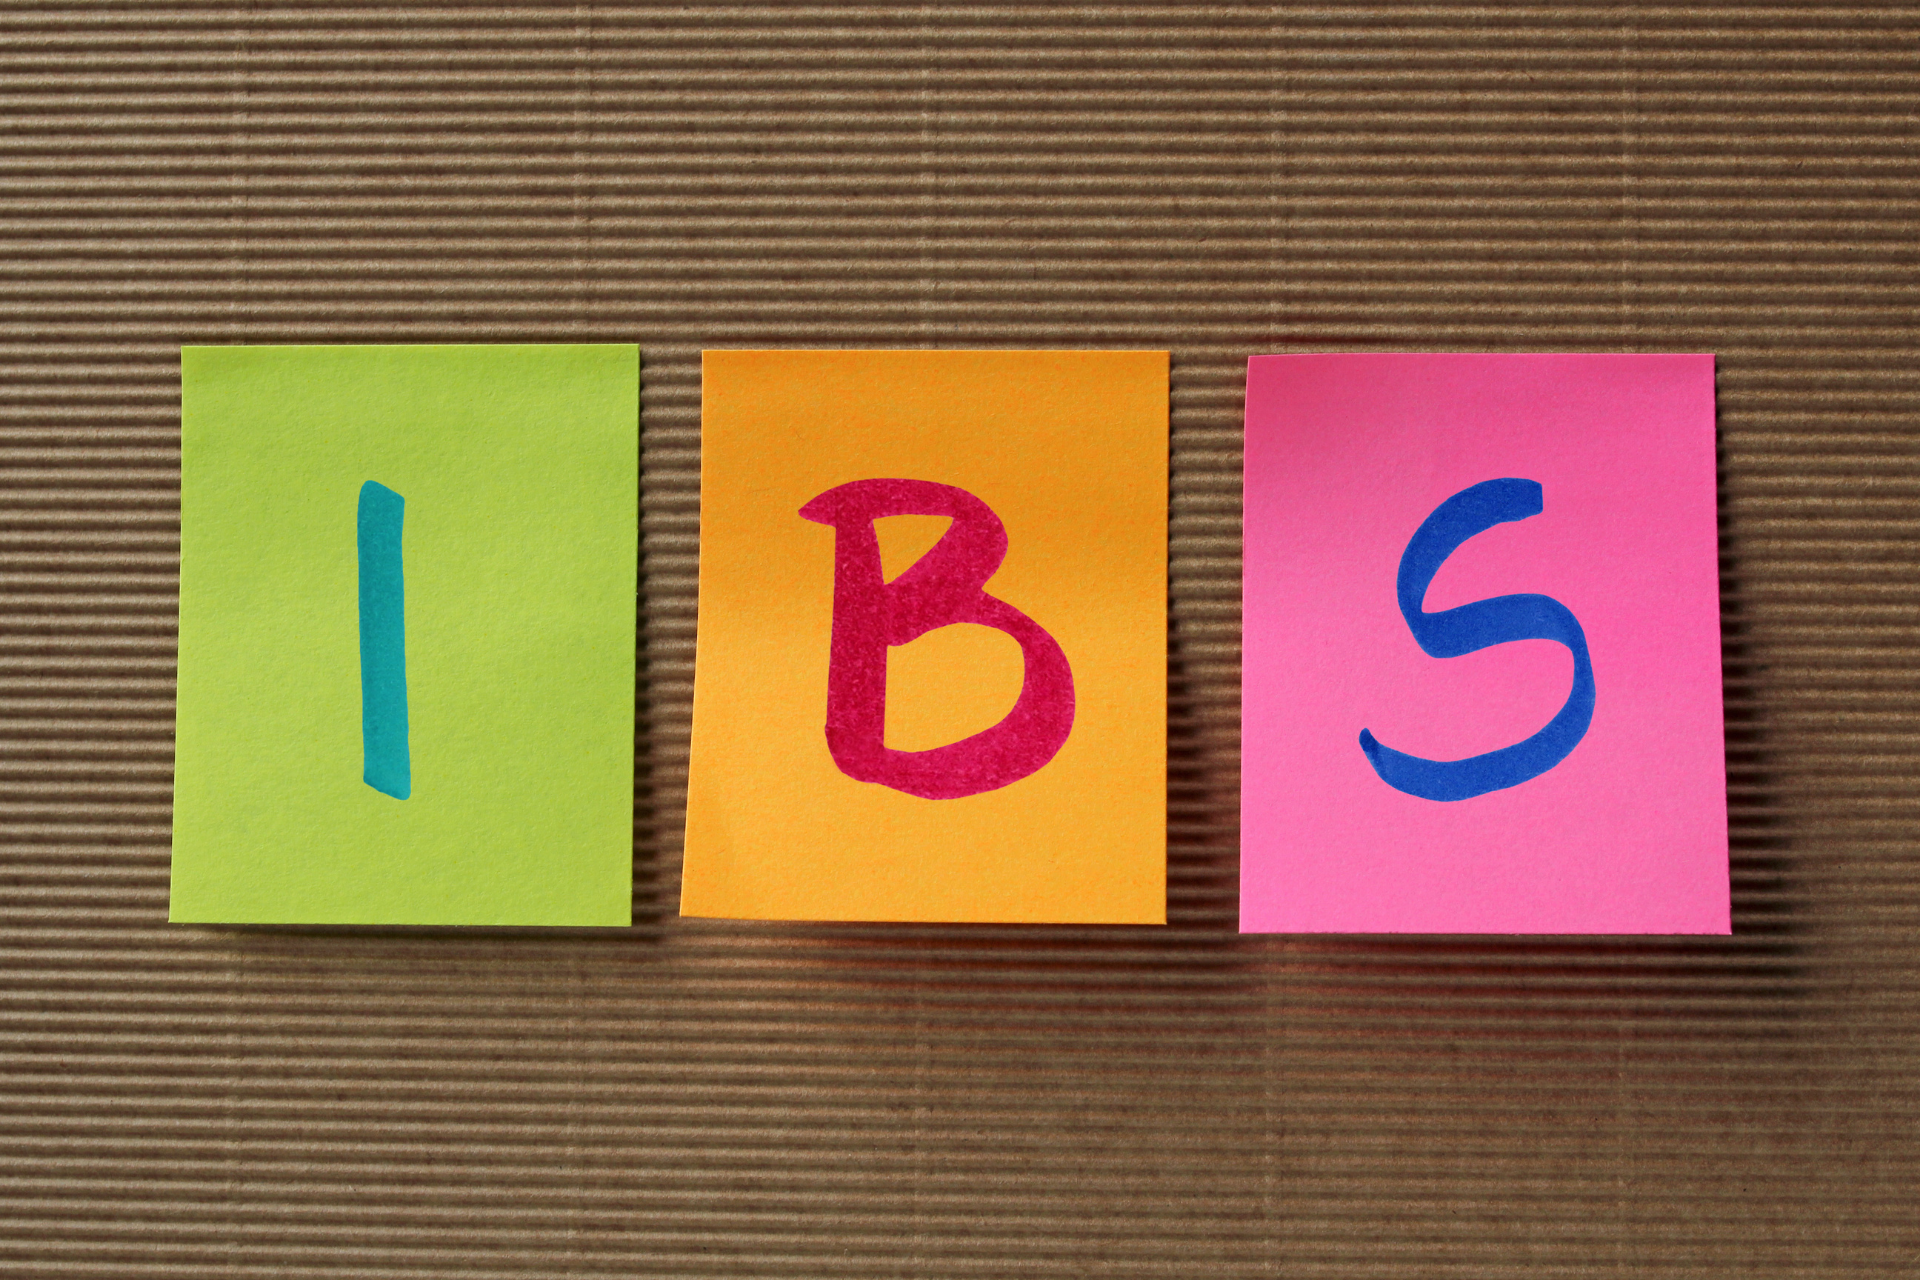 While IBS can be a debilitating condition, you can learn to let you empower you.